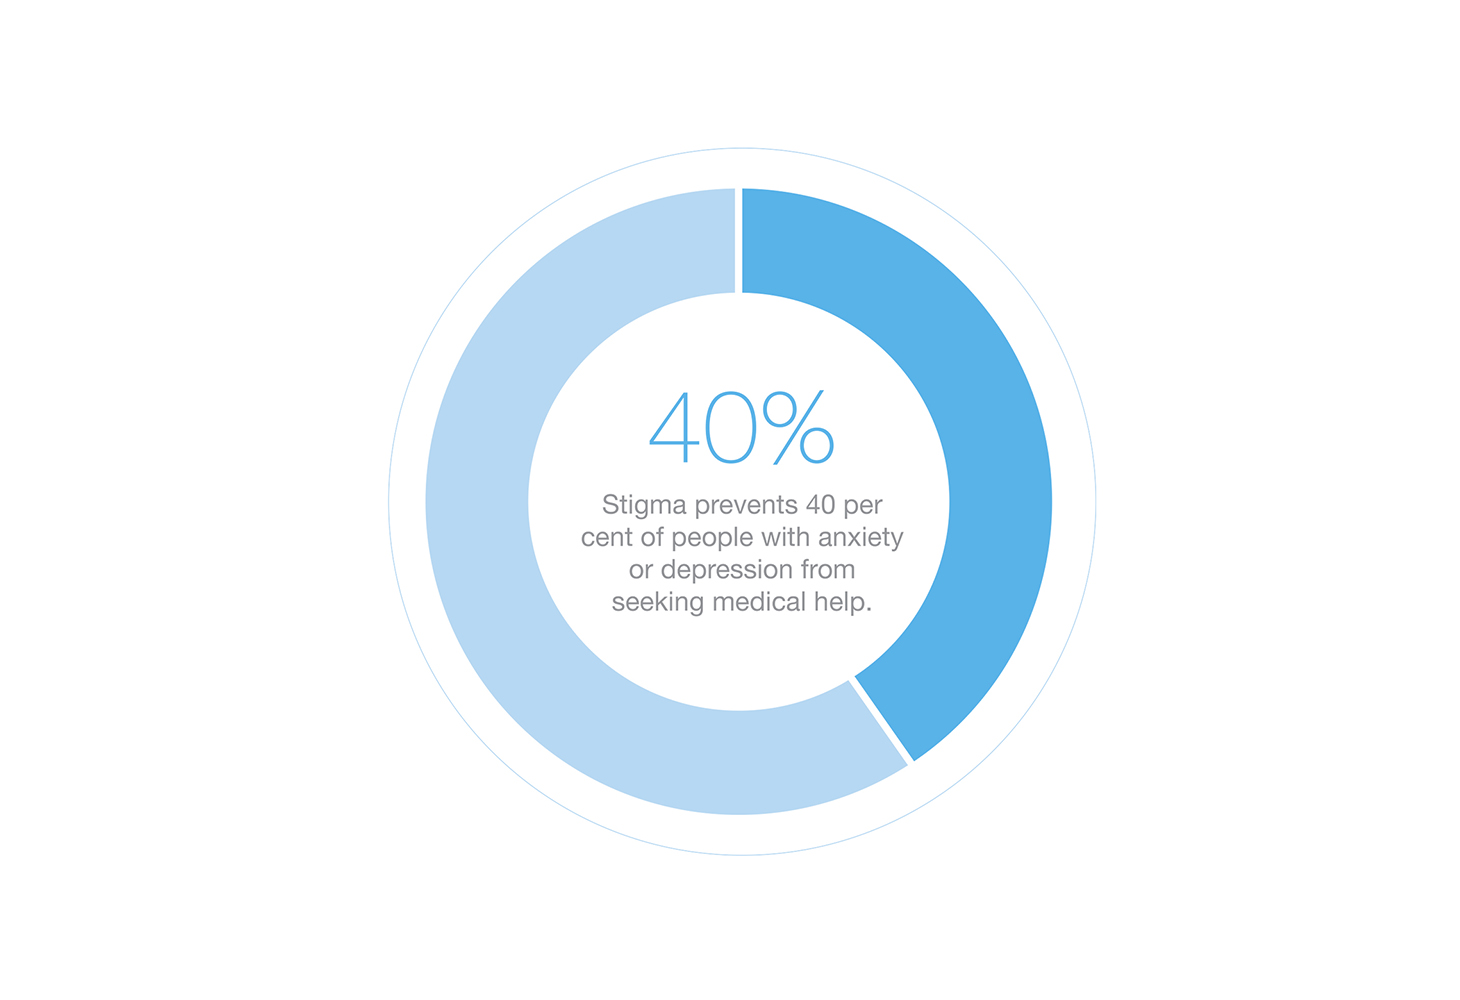 Graphic about stigma preventing 40 percent of people with anxiety or depression from seeking medical help.